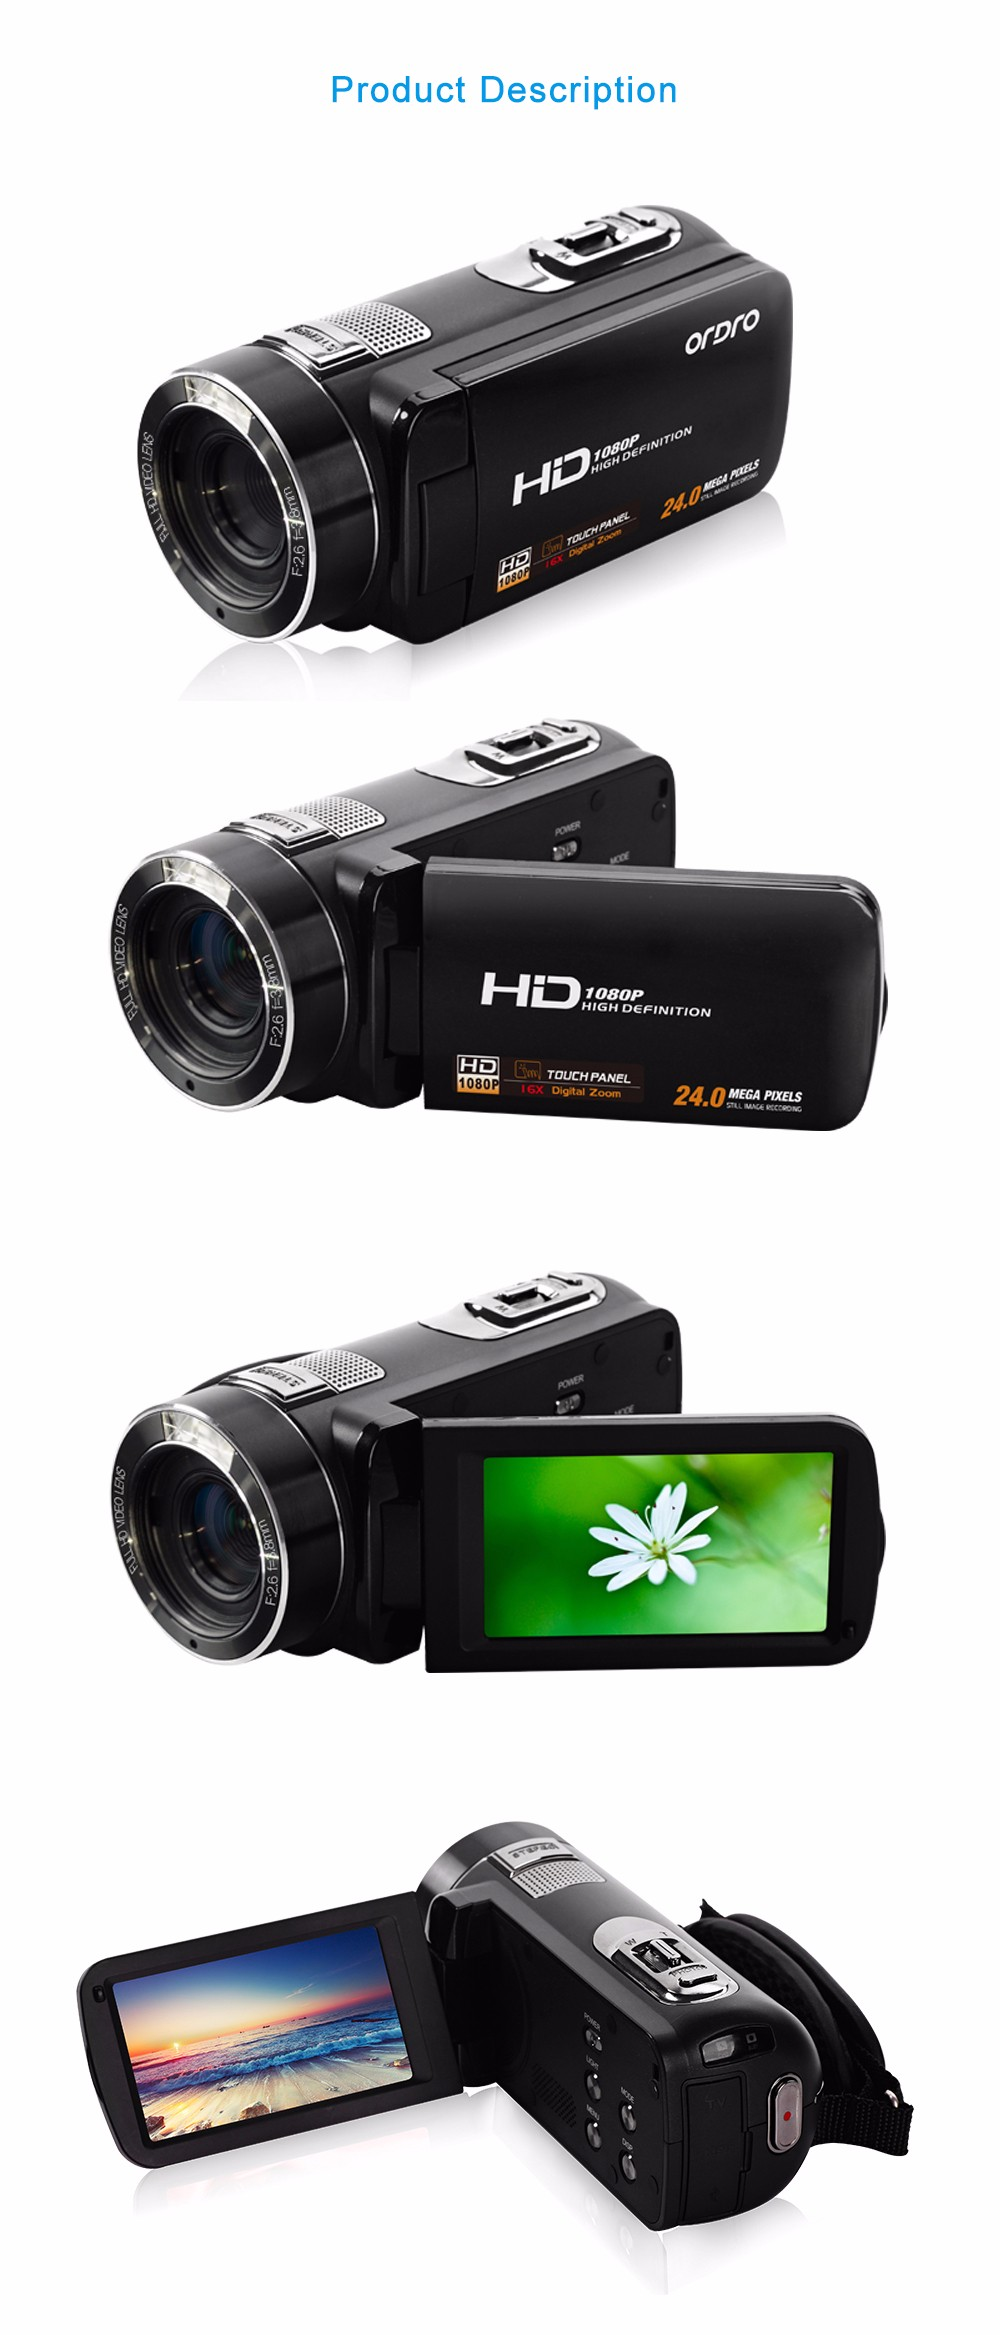 """Ordro Camcorder HDV-Z8 Plus 1080P FHD Digital Video Camera 3.0"""" LCD Touch Screen with Remote Control USB Port HDMI Output 12"""